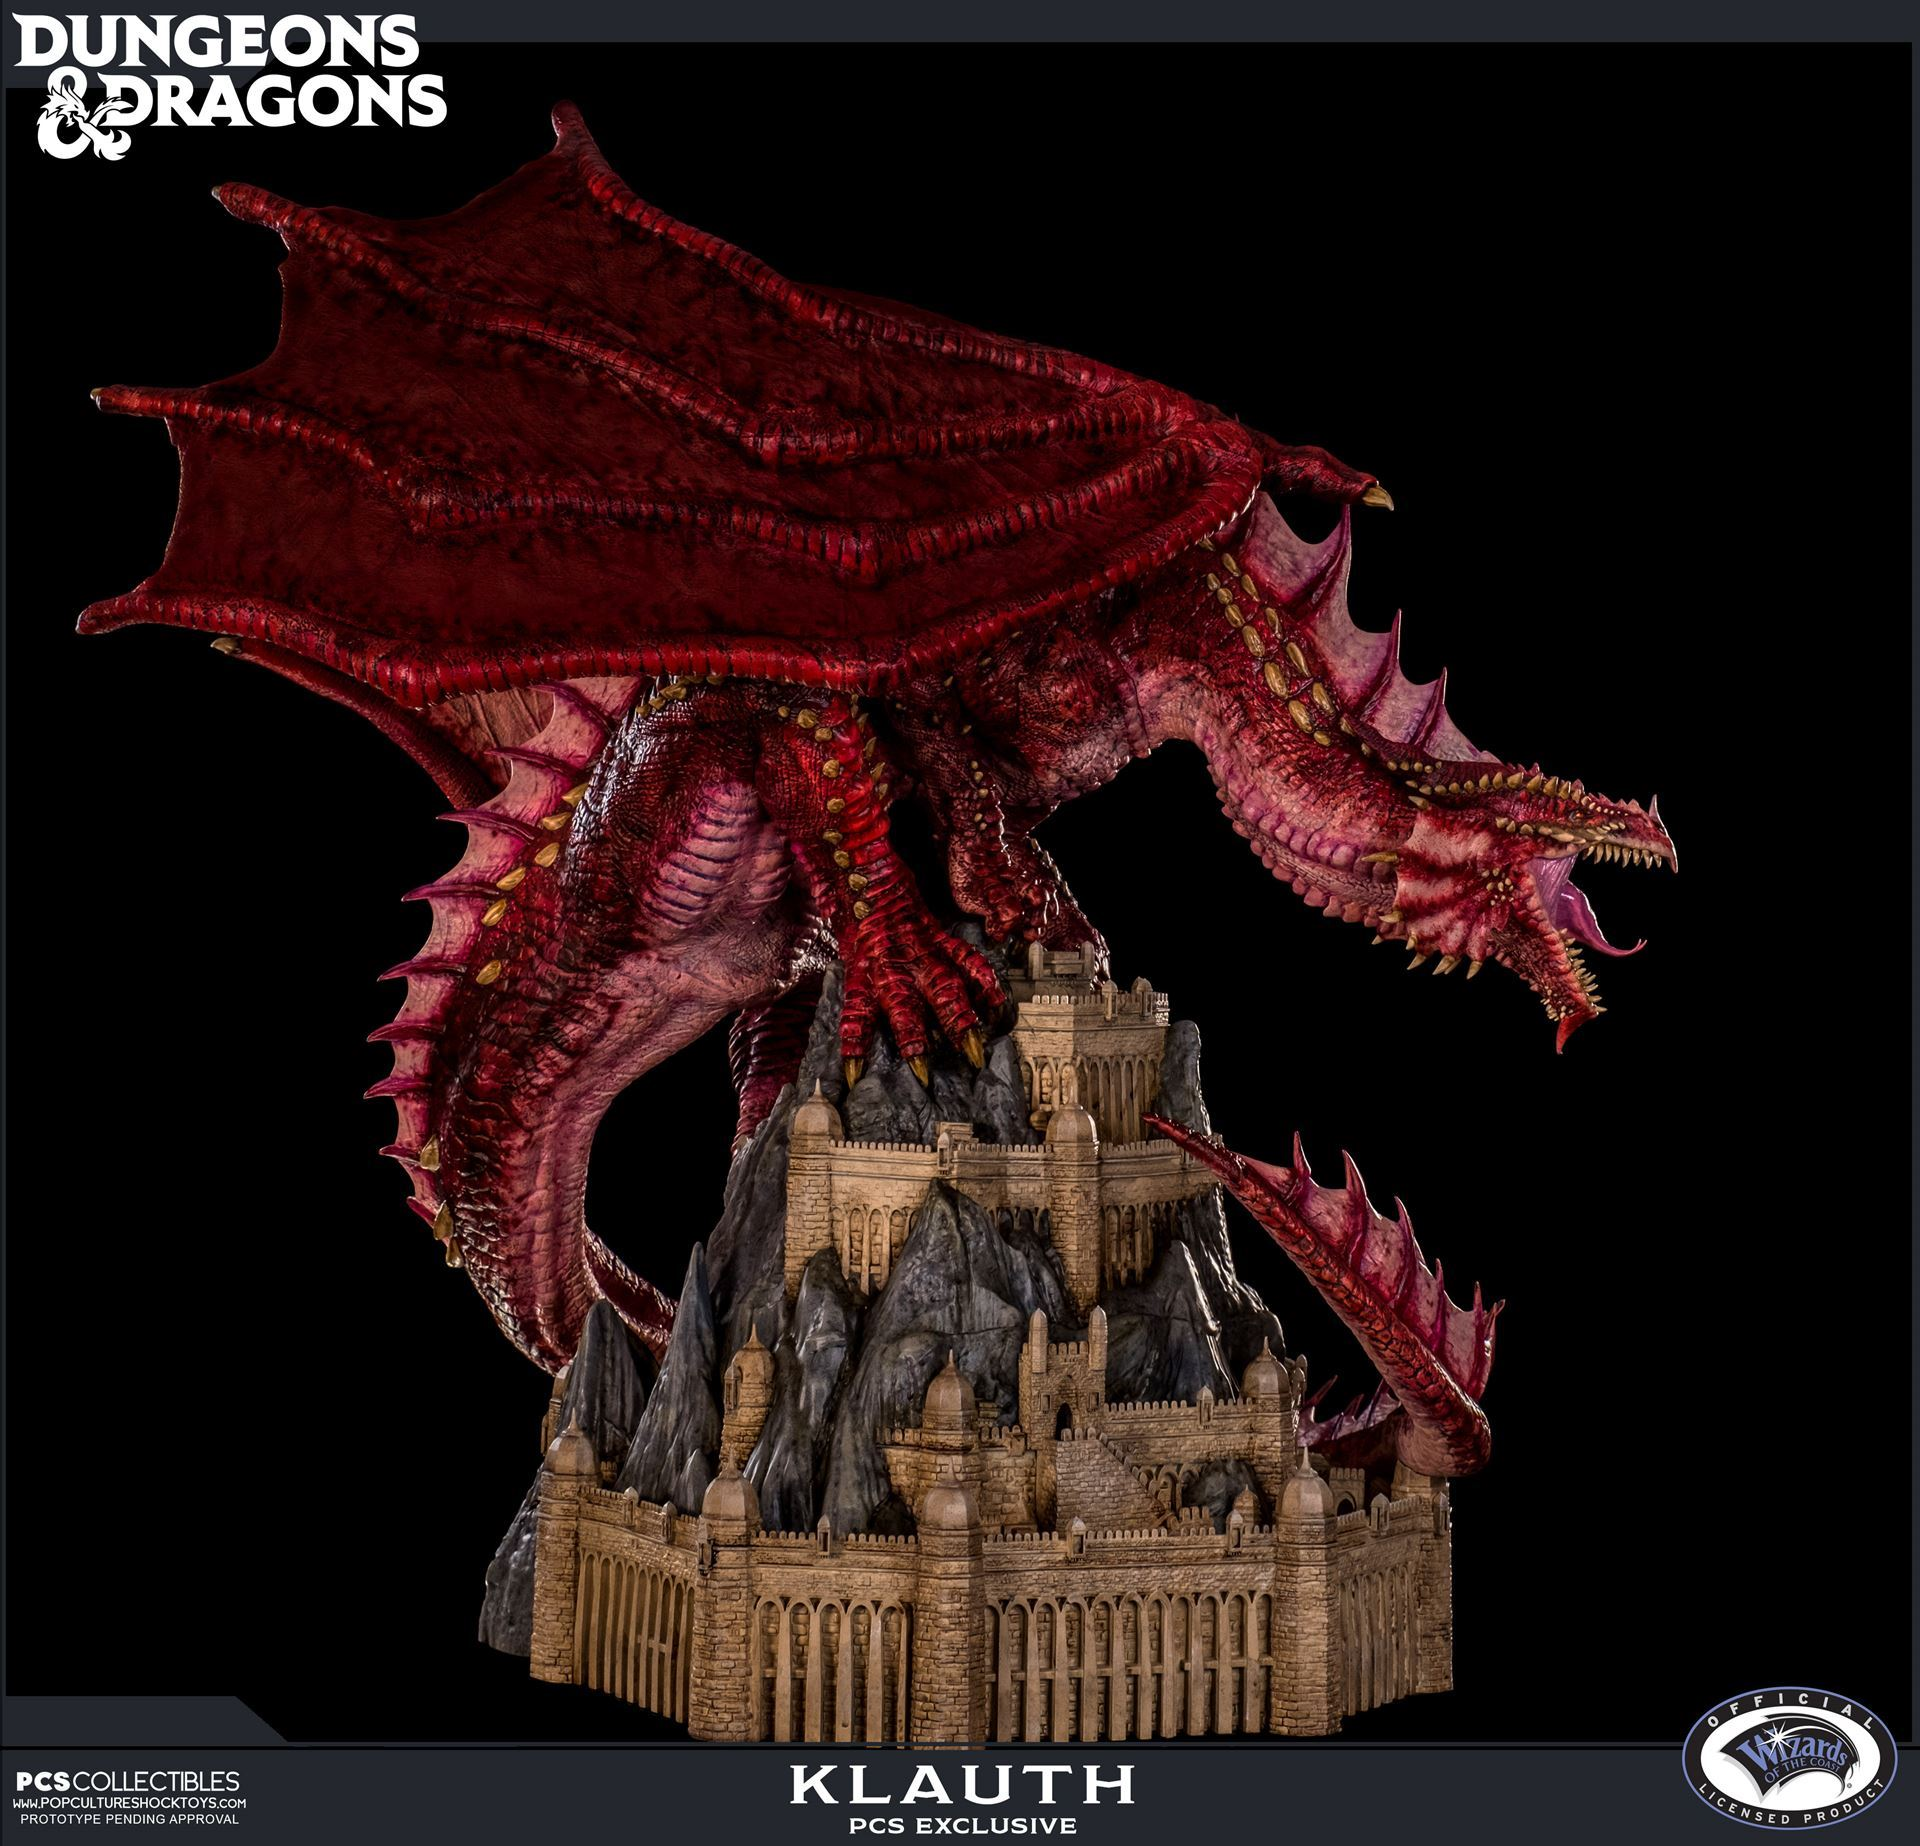 Dungeons and Dragons - Klauth the Red Dragon Statue Update